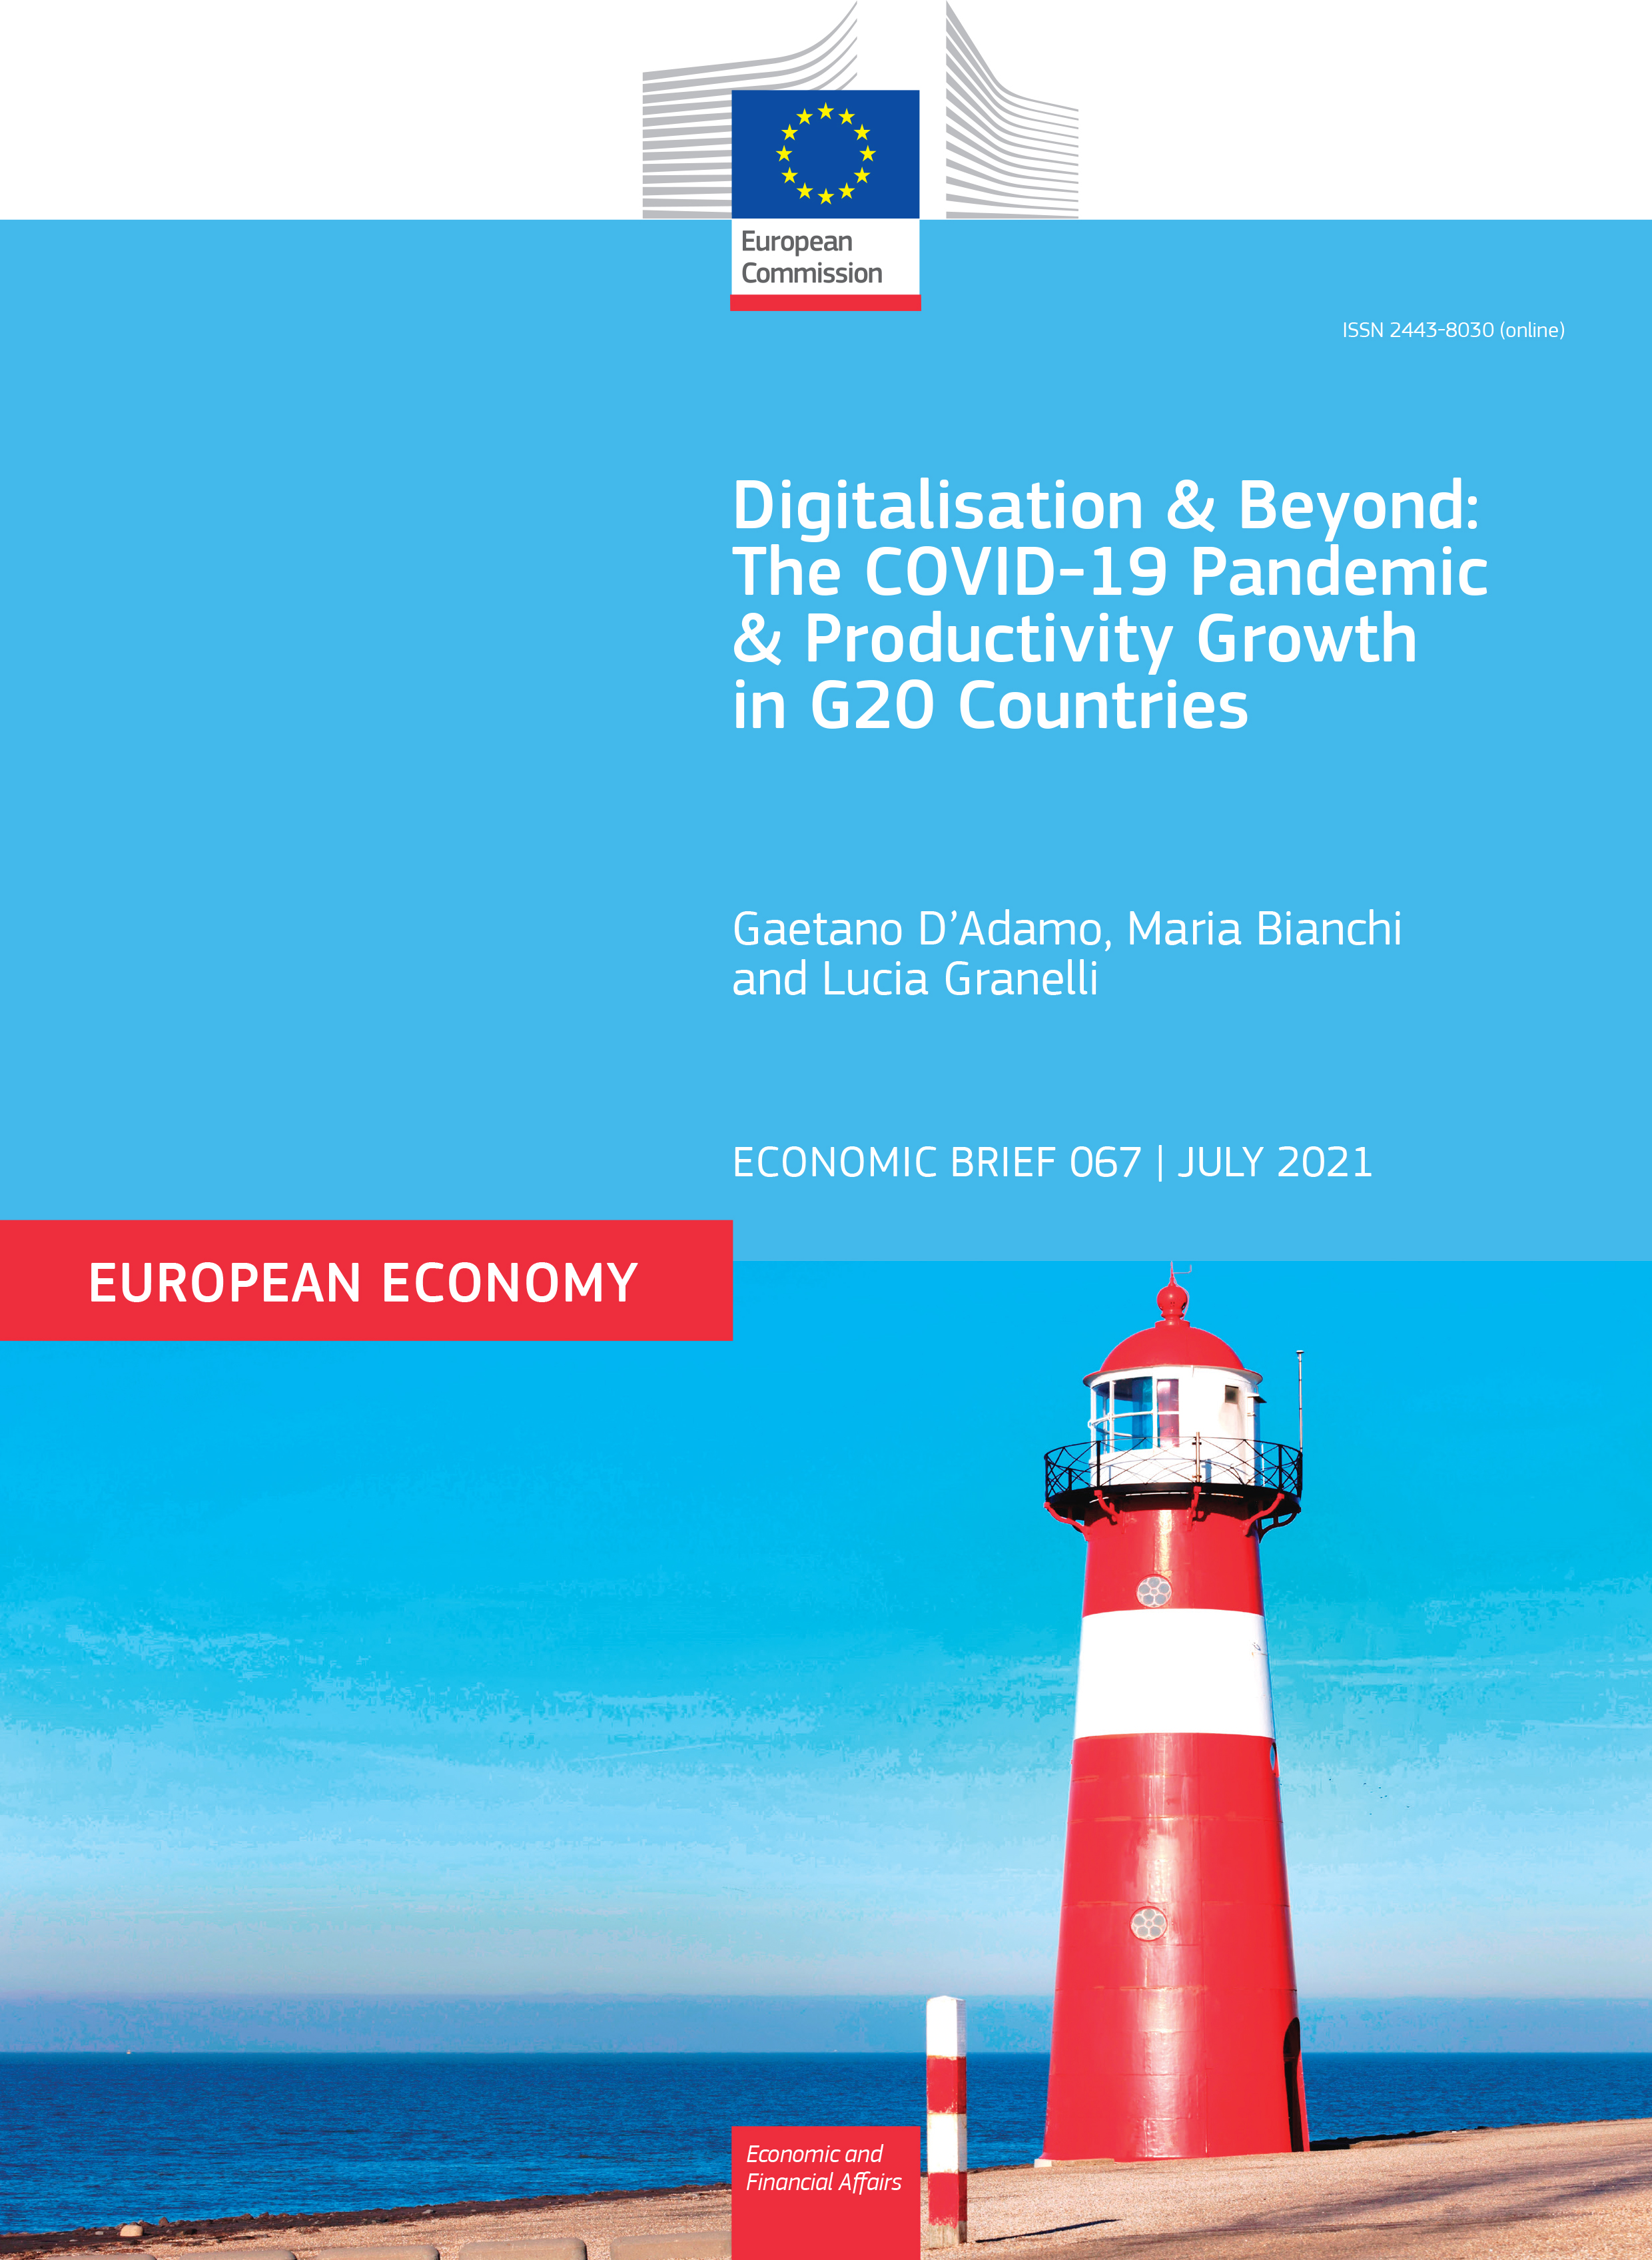 Digitalisation and Beyond: The COVID-19 Pandemic and Productivity Growth in G20 Countries